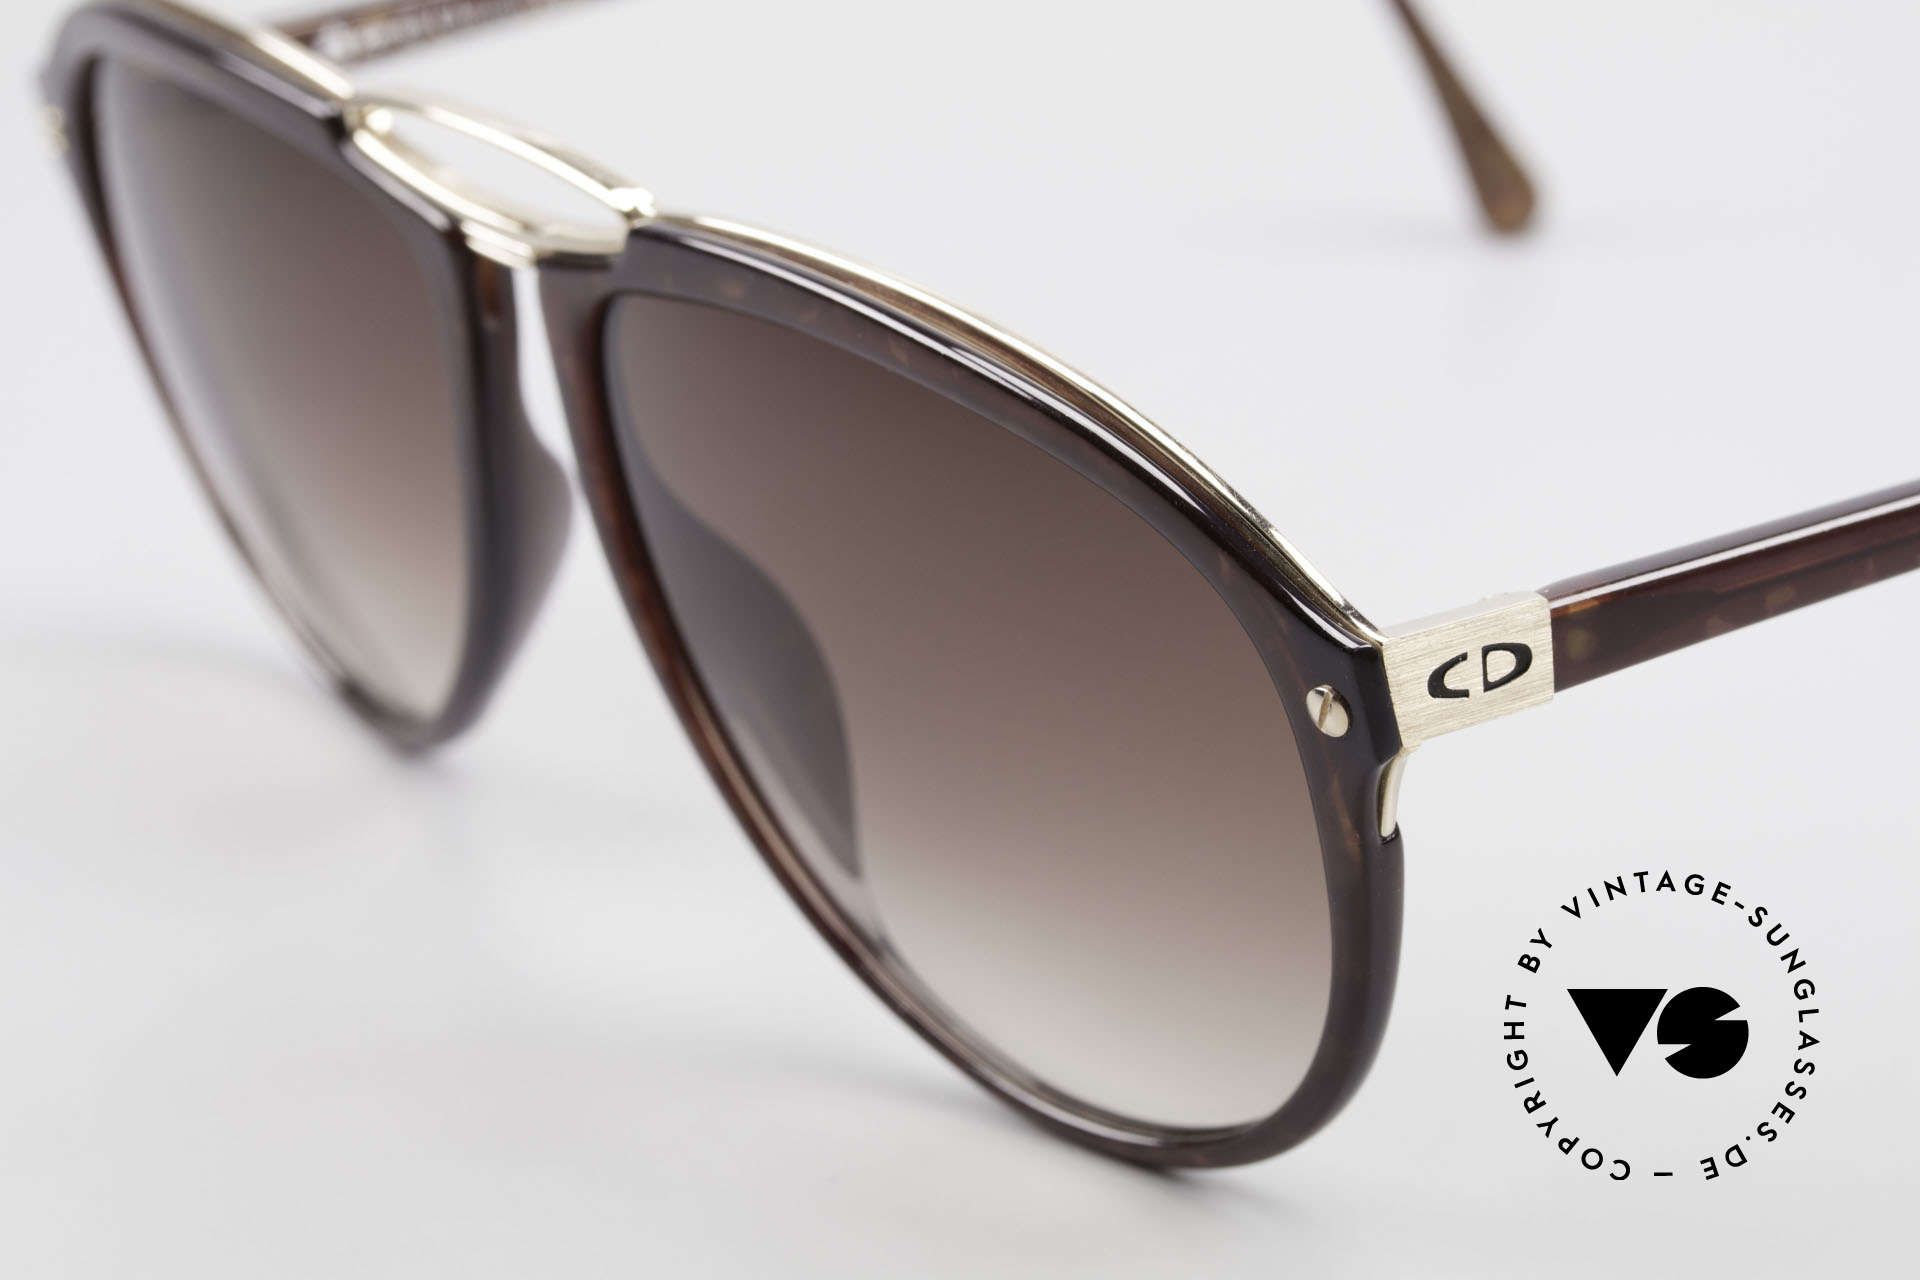 Christian Dior 2523 True 80's No Retro Sunglasses, premium craftsmanship (sun lenses with 100% UV), Made for Men